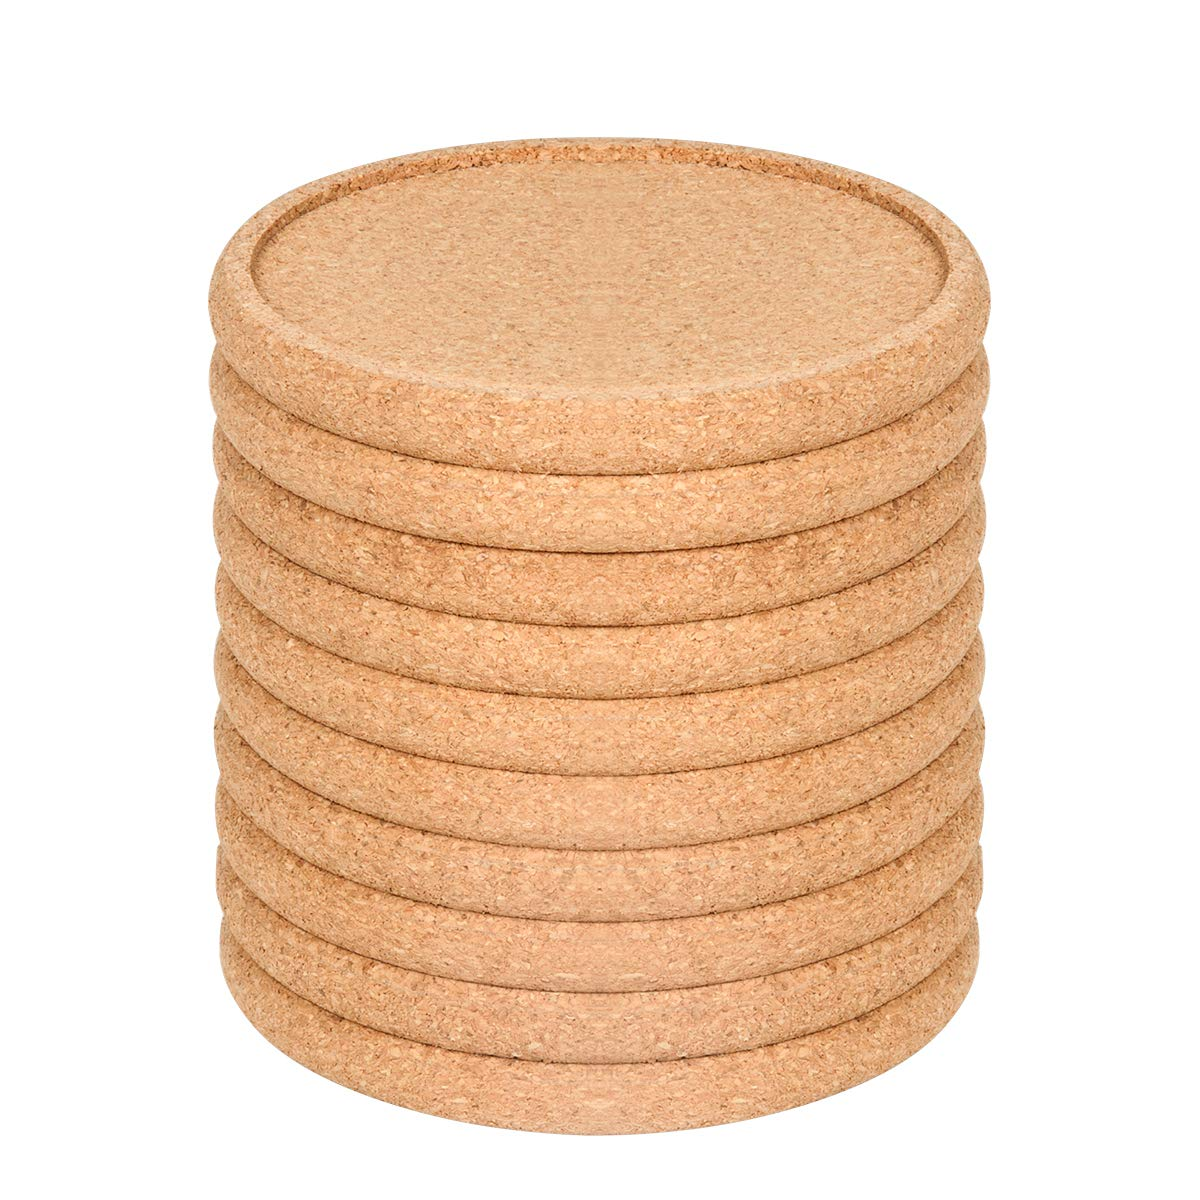 Cork Coasters For Drinks Absorbent Set 10 PCS, 3.9'' Diameter